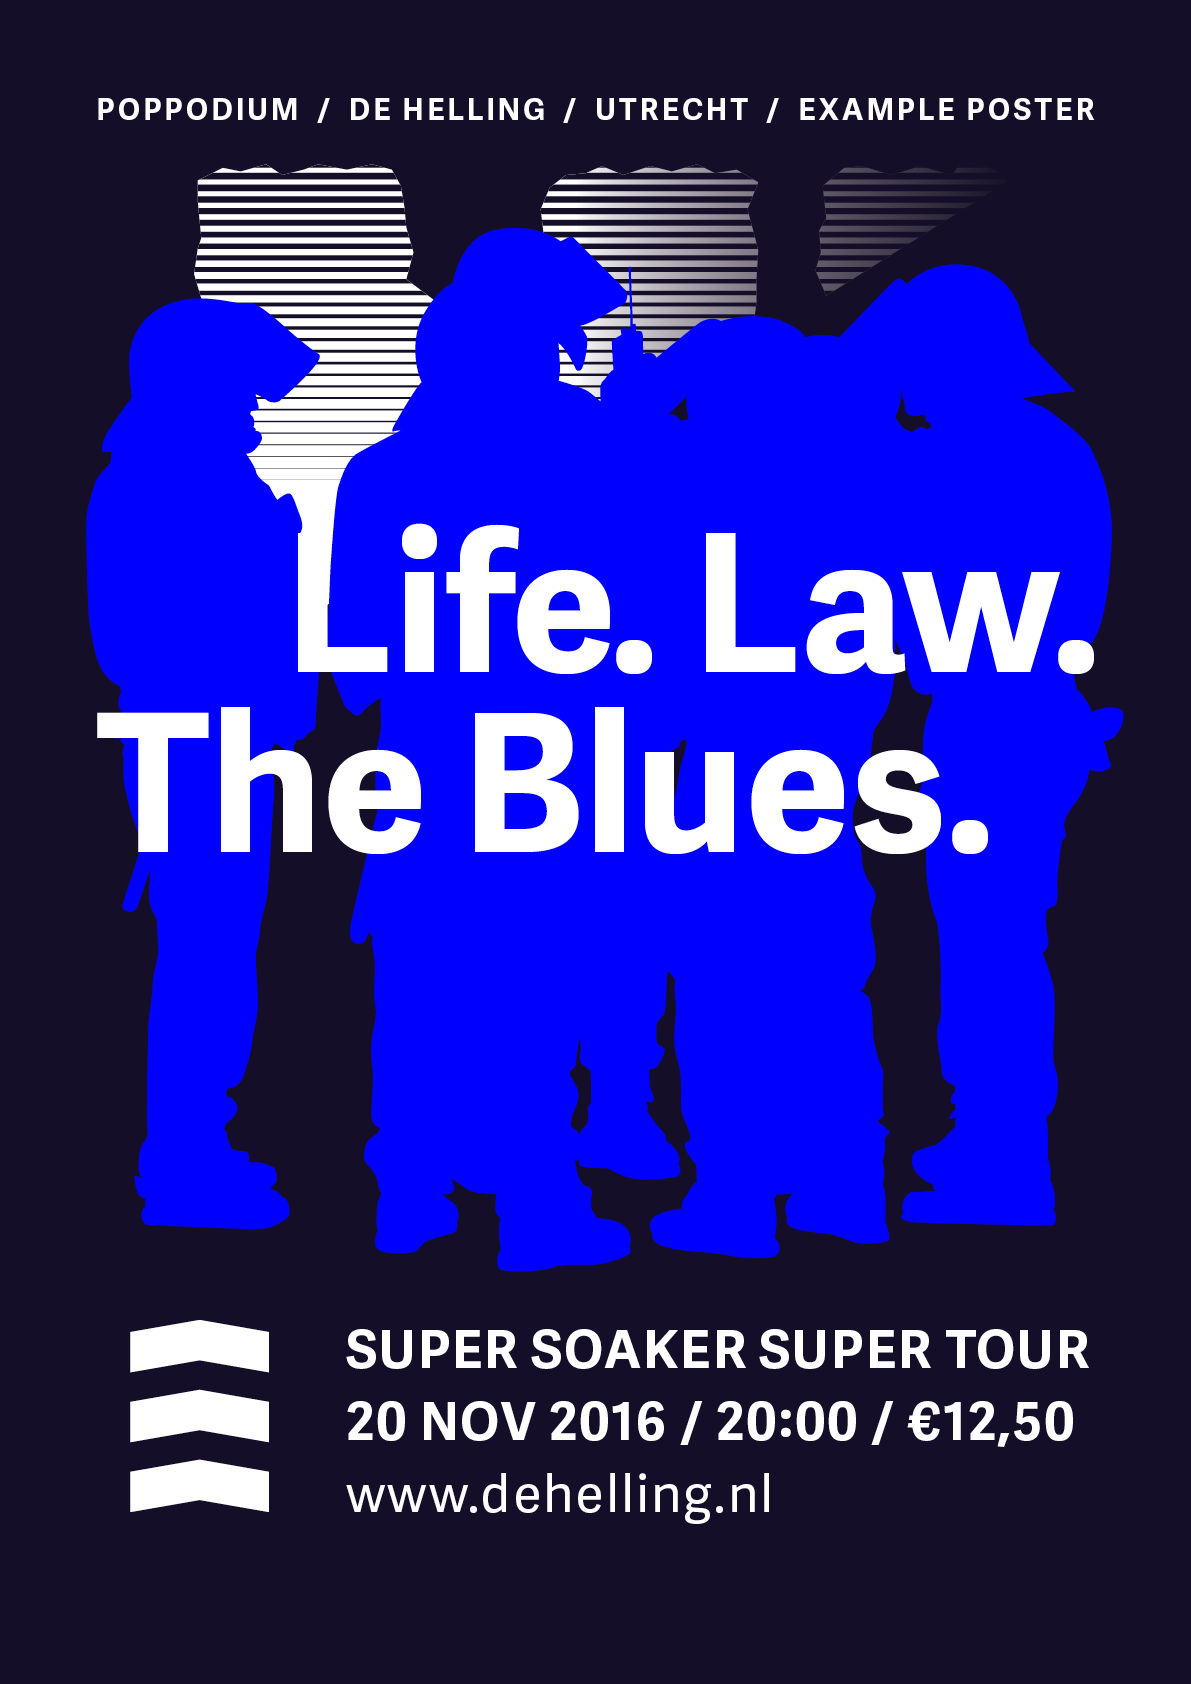 Example poster 'Life. Law. The Blues.'